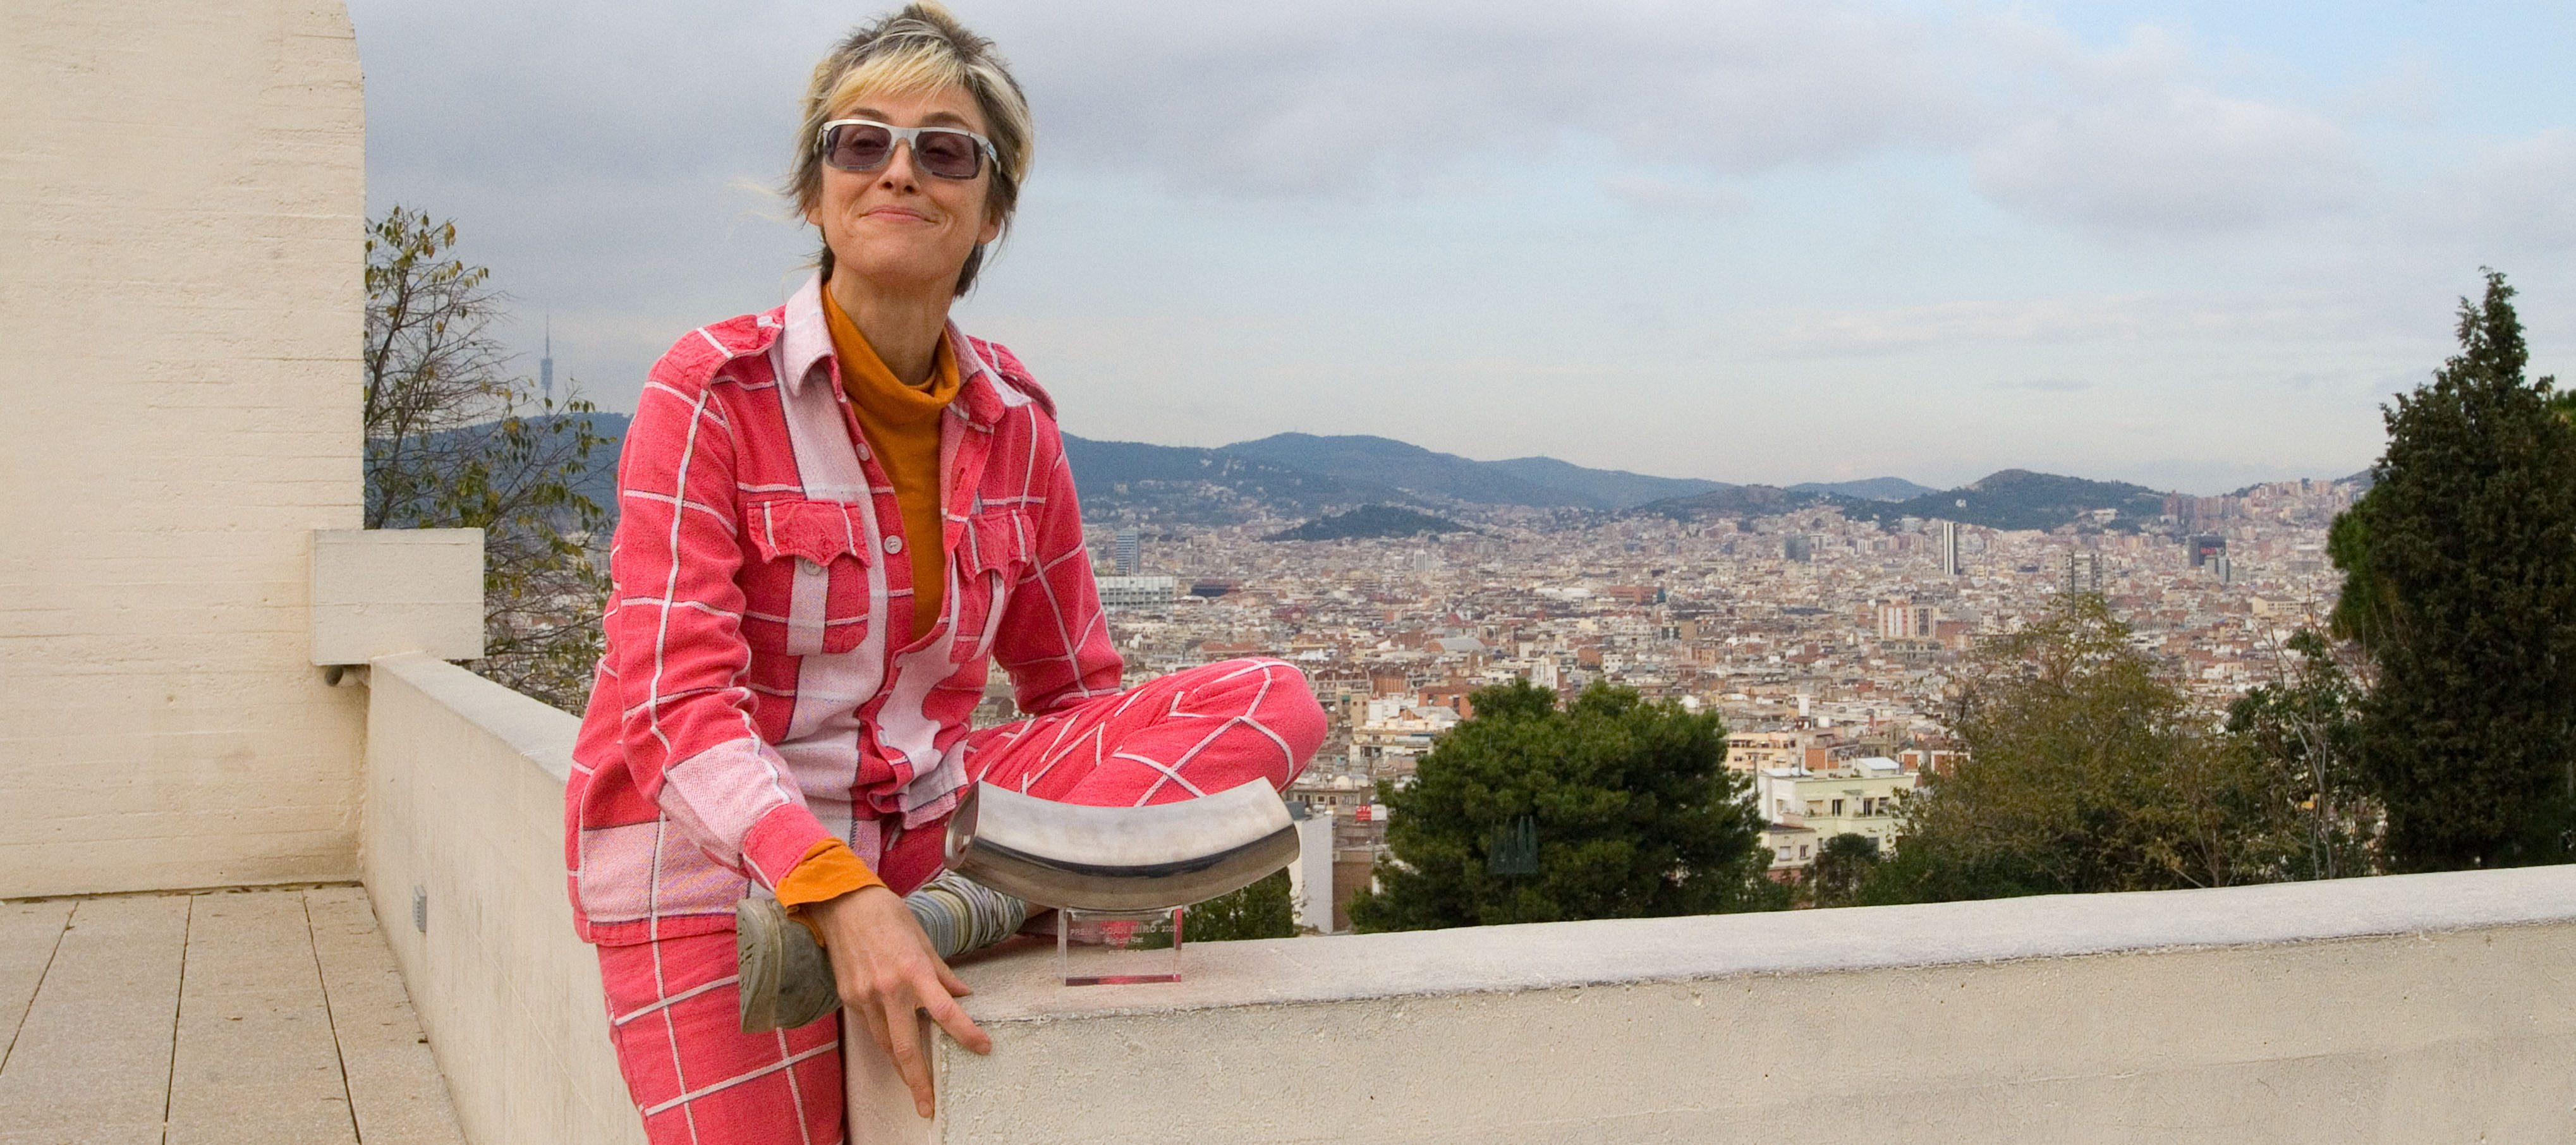 A light-skinned woman with a blonde and brown pixie cut sits atop a cement wall that overlooks Barcelona. She wears a dark and light pink cardigan and pants with checkered white lines over an orange turtleneck. She sits casually on the wall with one left folded under her and the other long, touching the ground. She smiles mischievously at the camera.